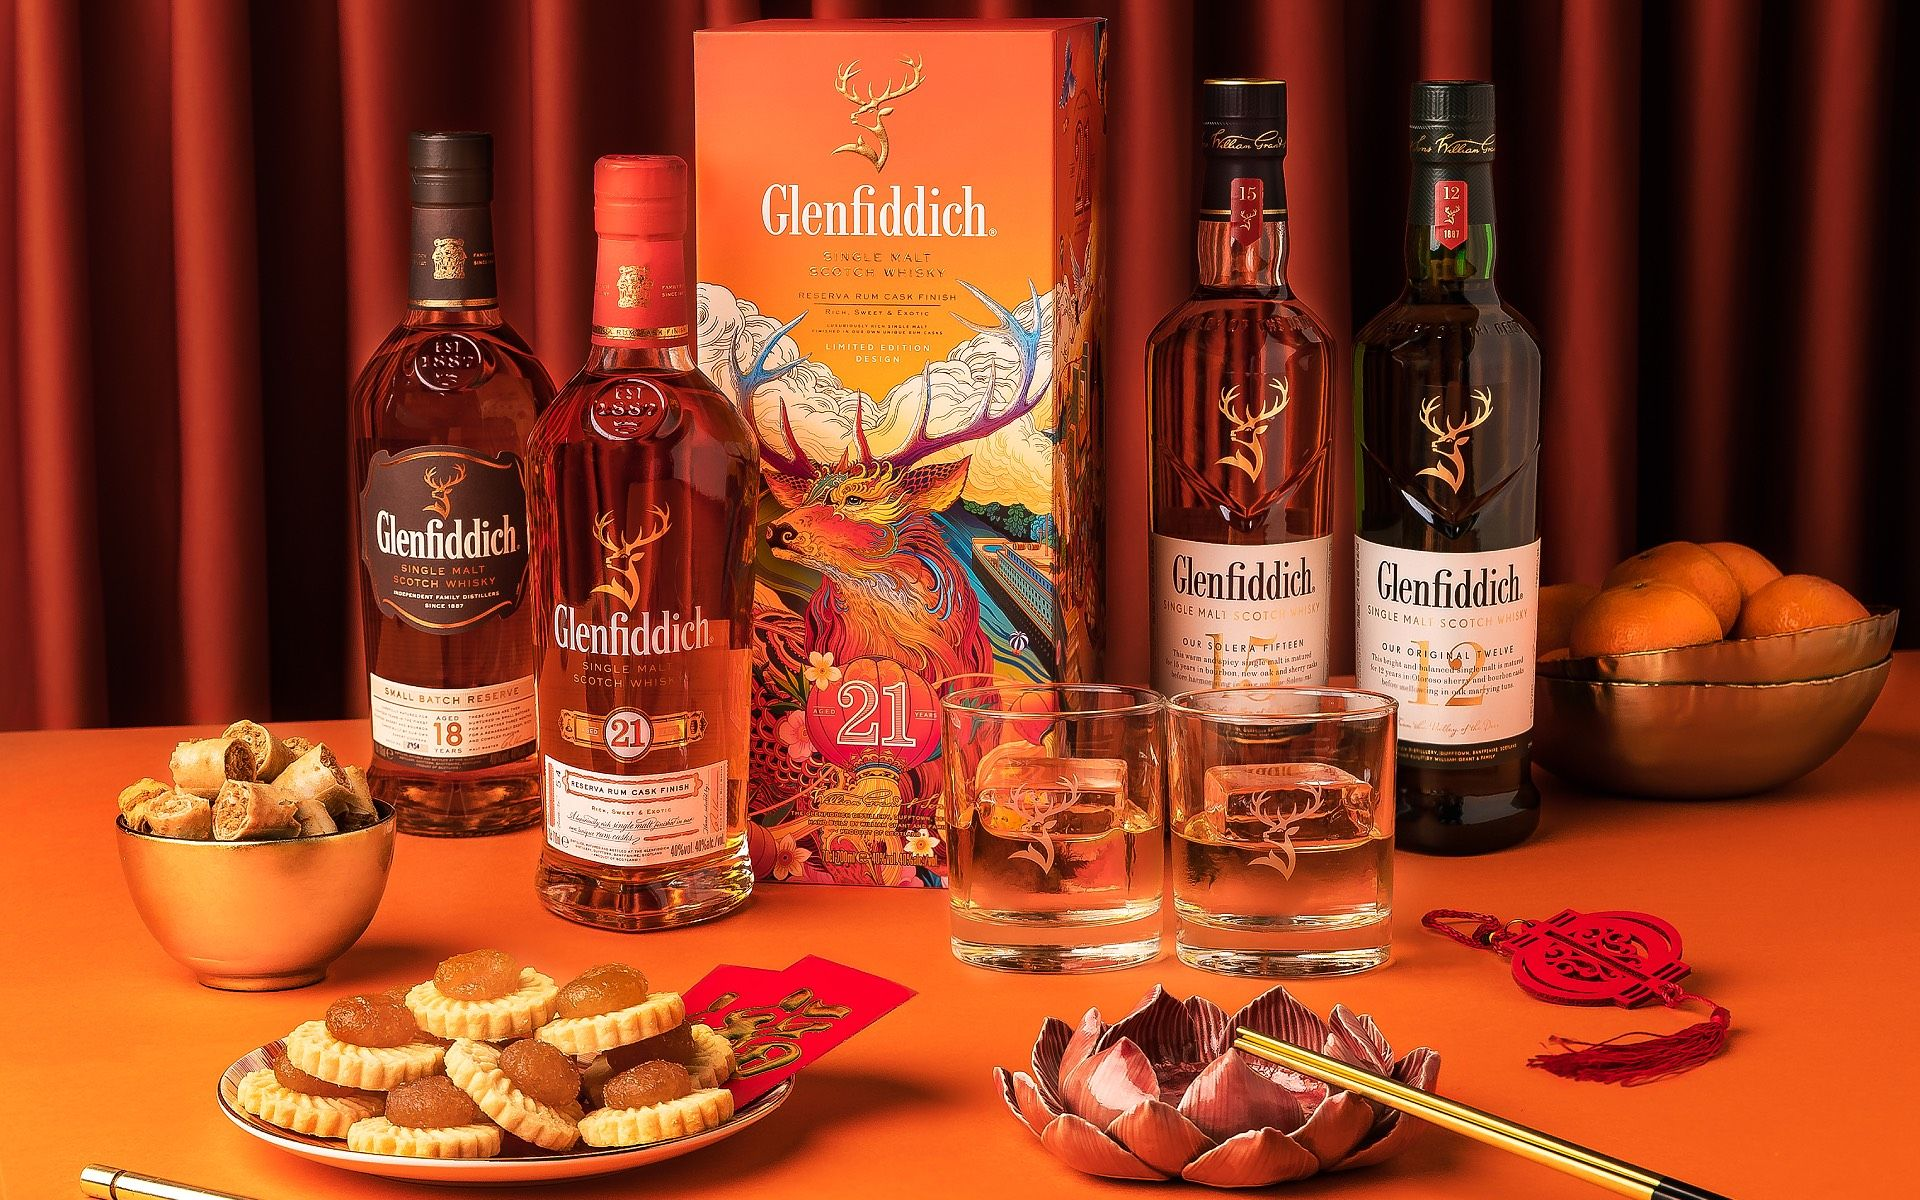 Glenfiddich Gifting Gets A Lot Cooler With Augmented Reality This Chinese New Year photo